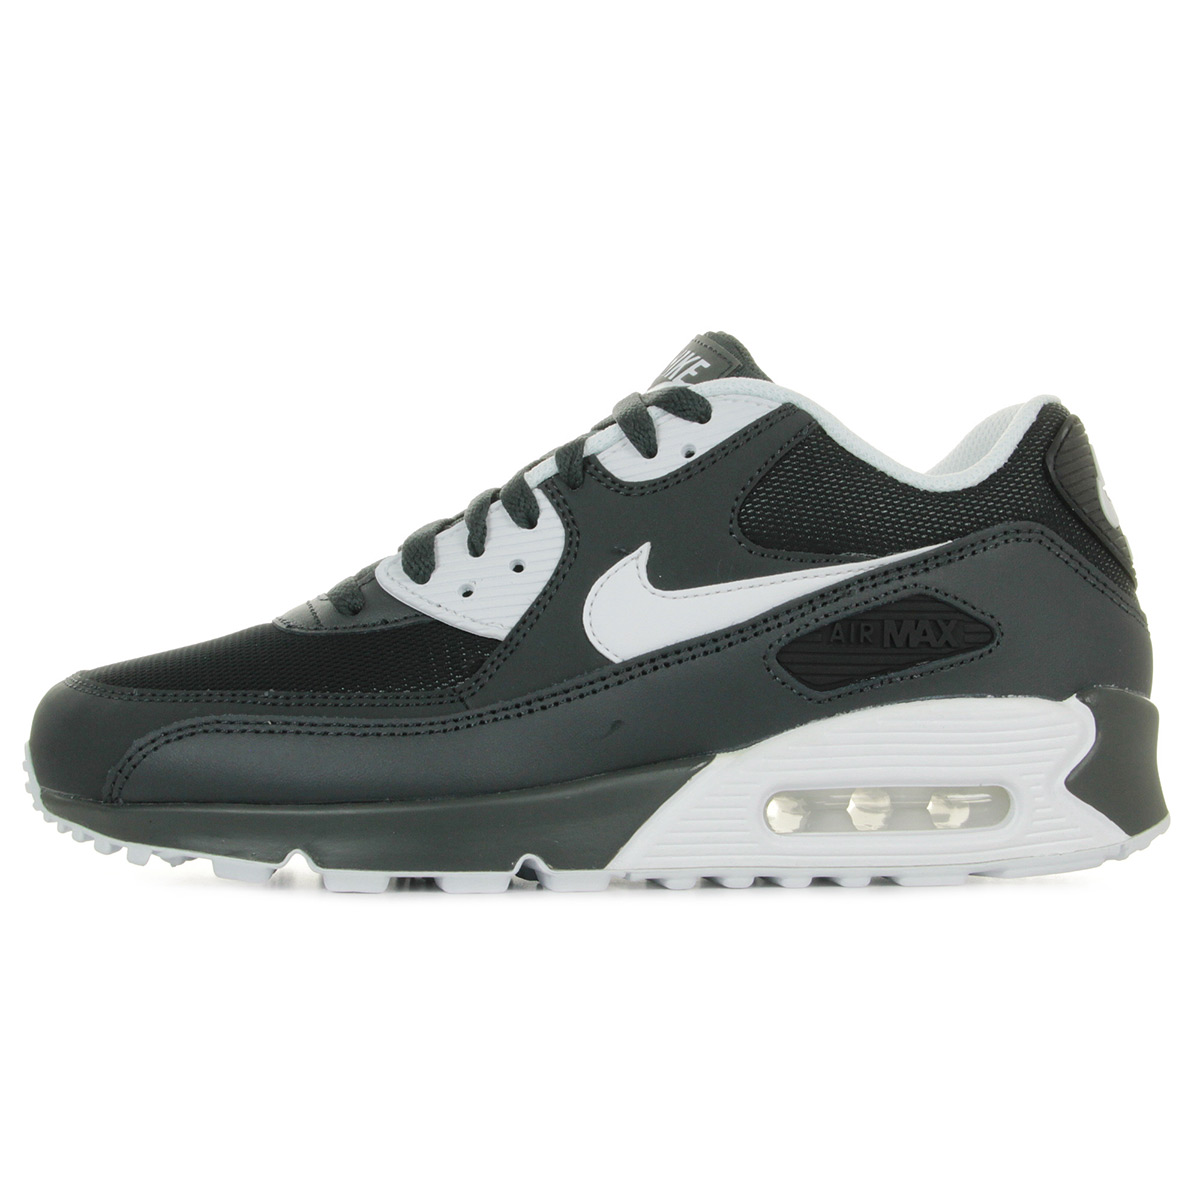 Nike Air max 90 Essential 537384089, Baskets mode homme